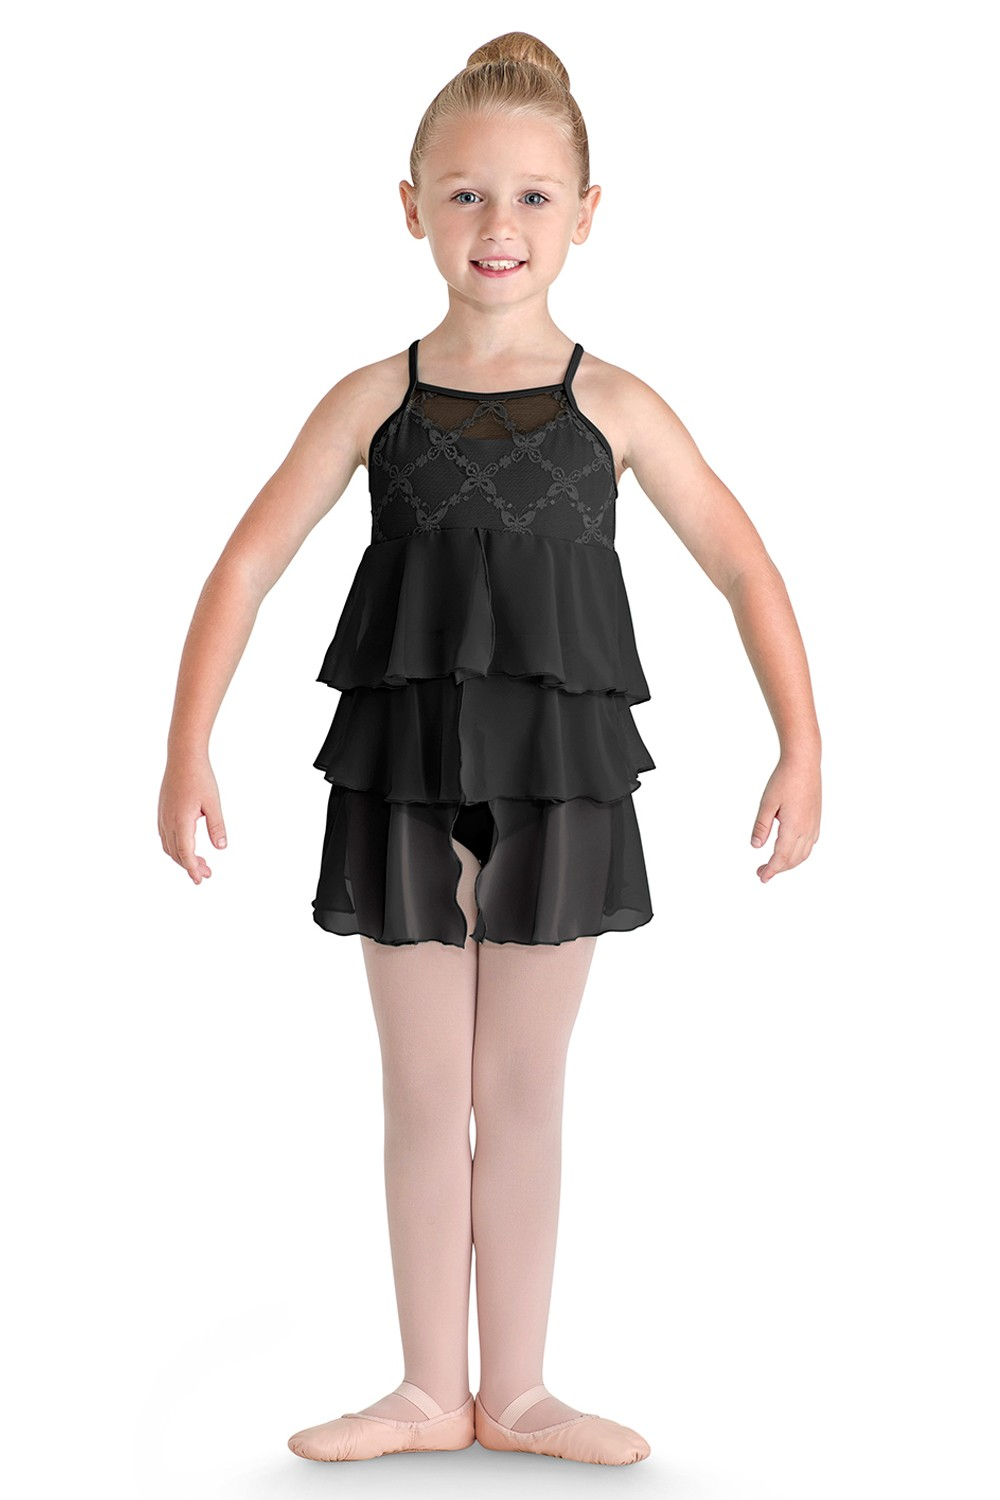 Triple Tier Dress Children's Dance Leotards